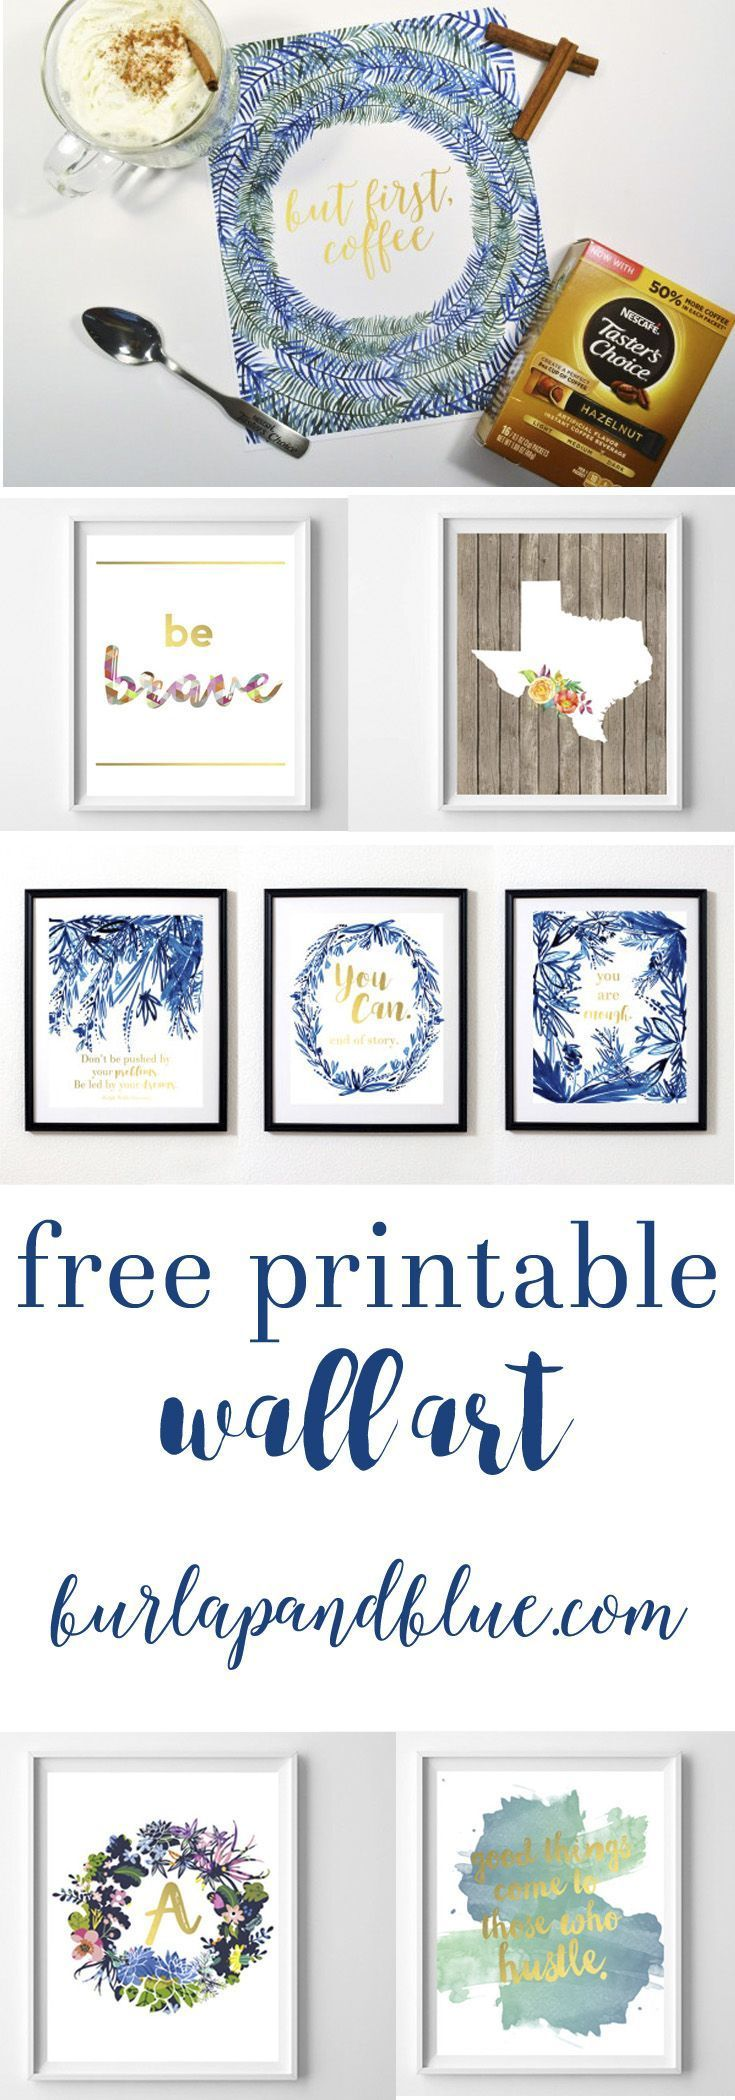 Diy crafts ideas free printable wall art over designsstyles